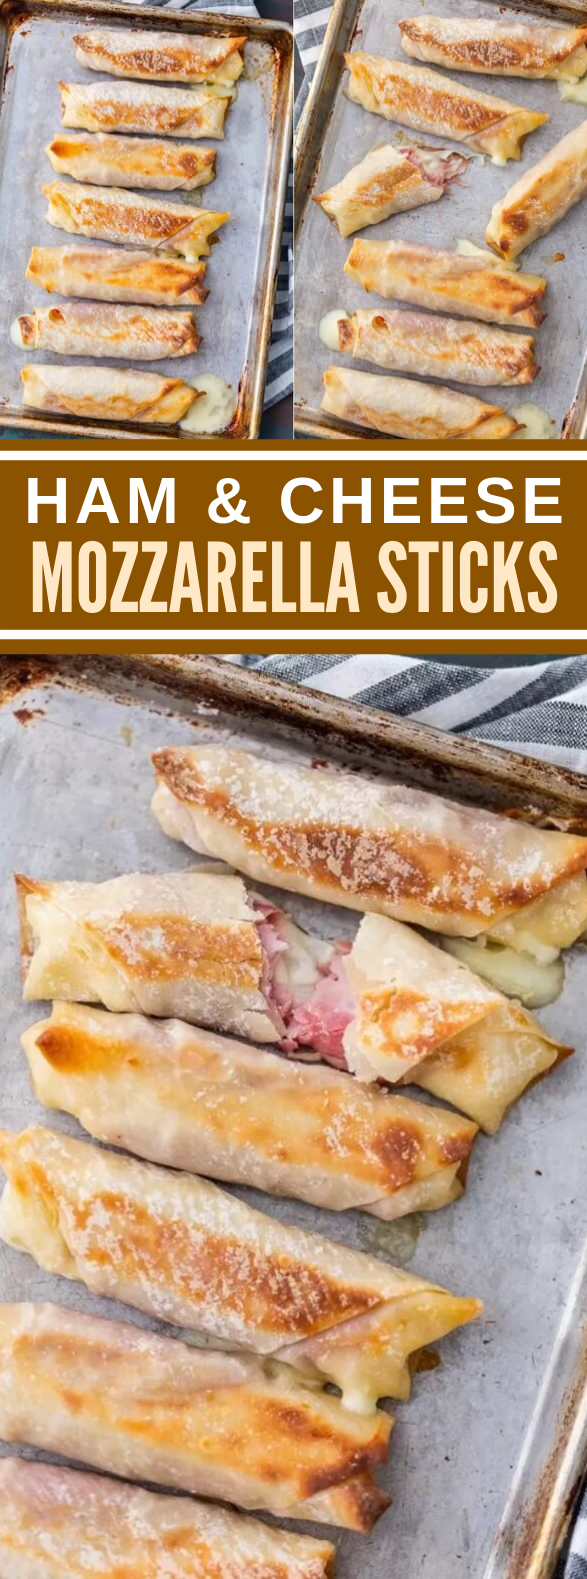 HOMEMADE HAM & MOZZARELLA CHEESE STICKS (BAKED CHEESE STICKS) #appetizers #easyrecipes